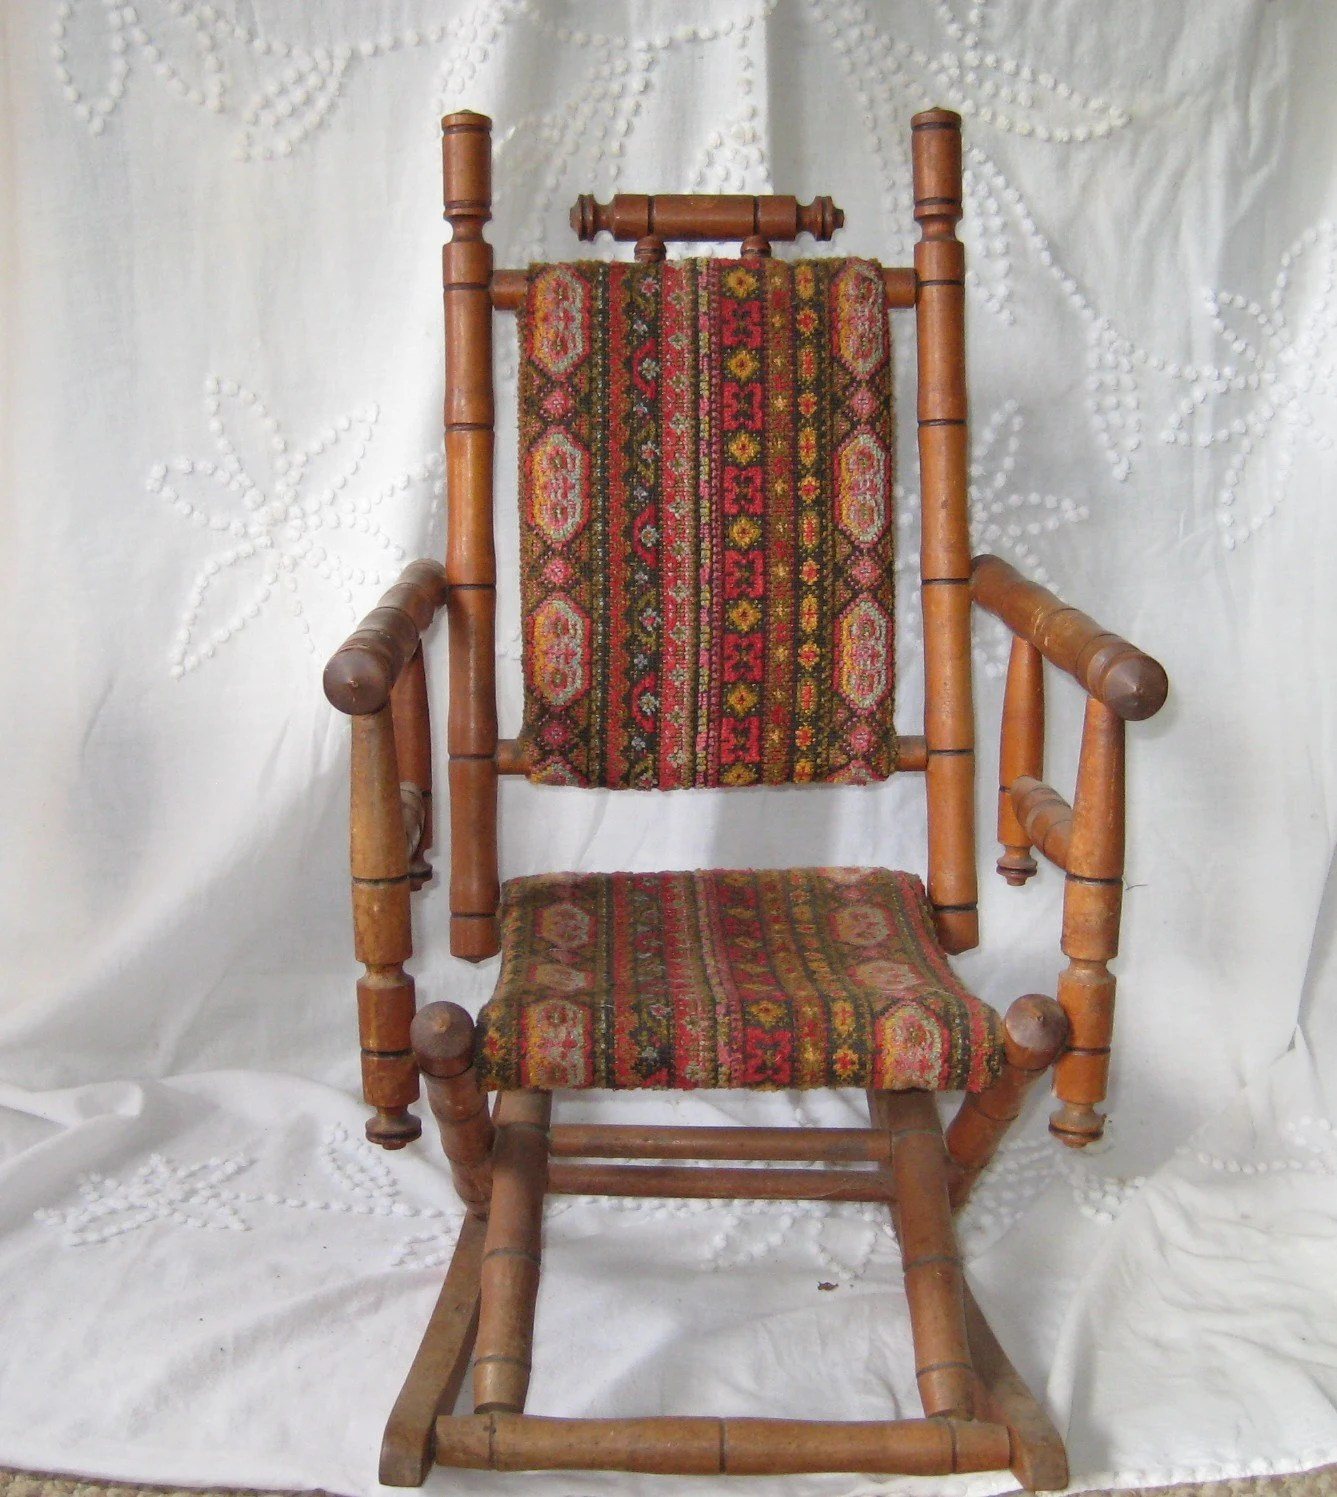 antique platform rocking chair with springs chairperson childs upholstered